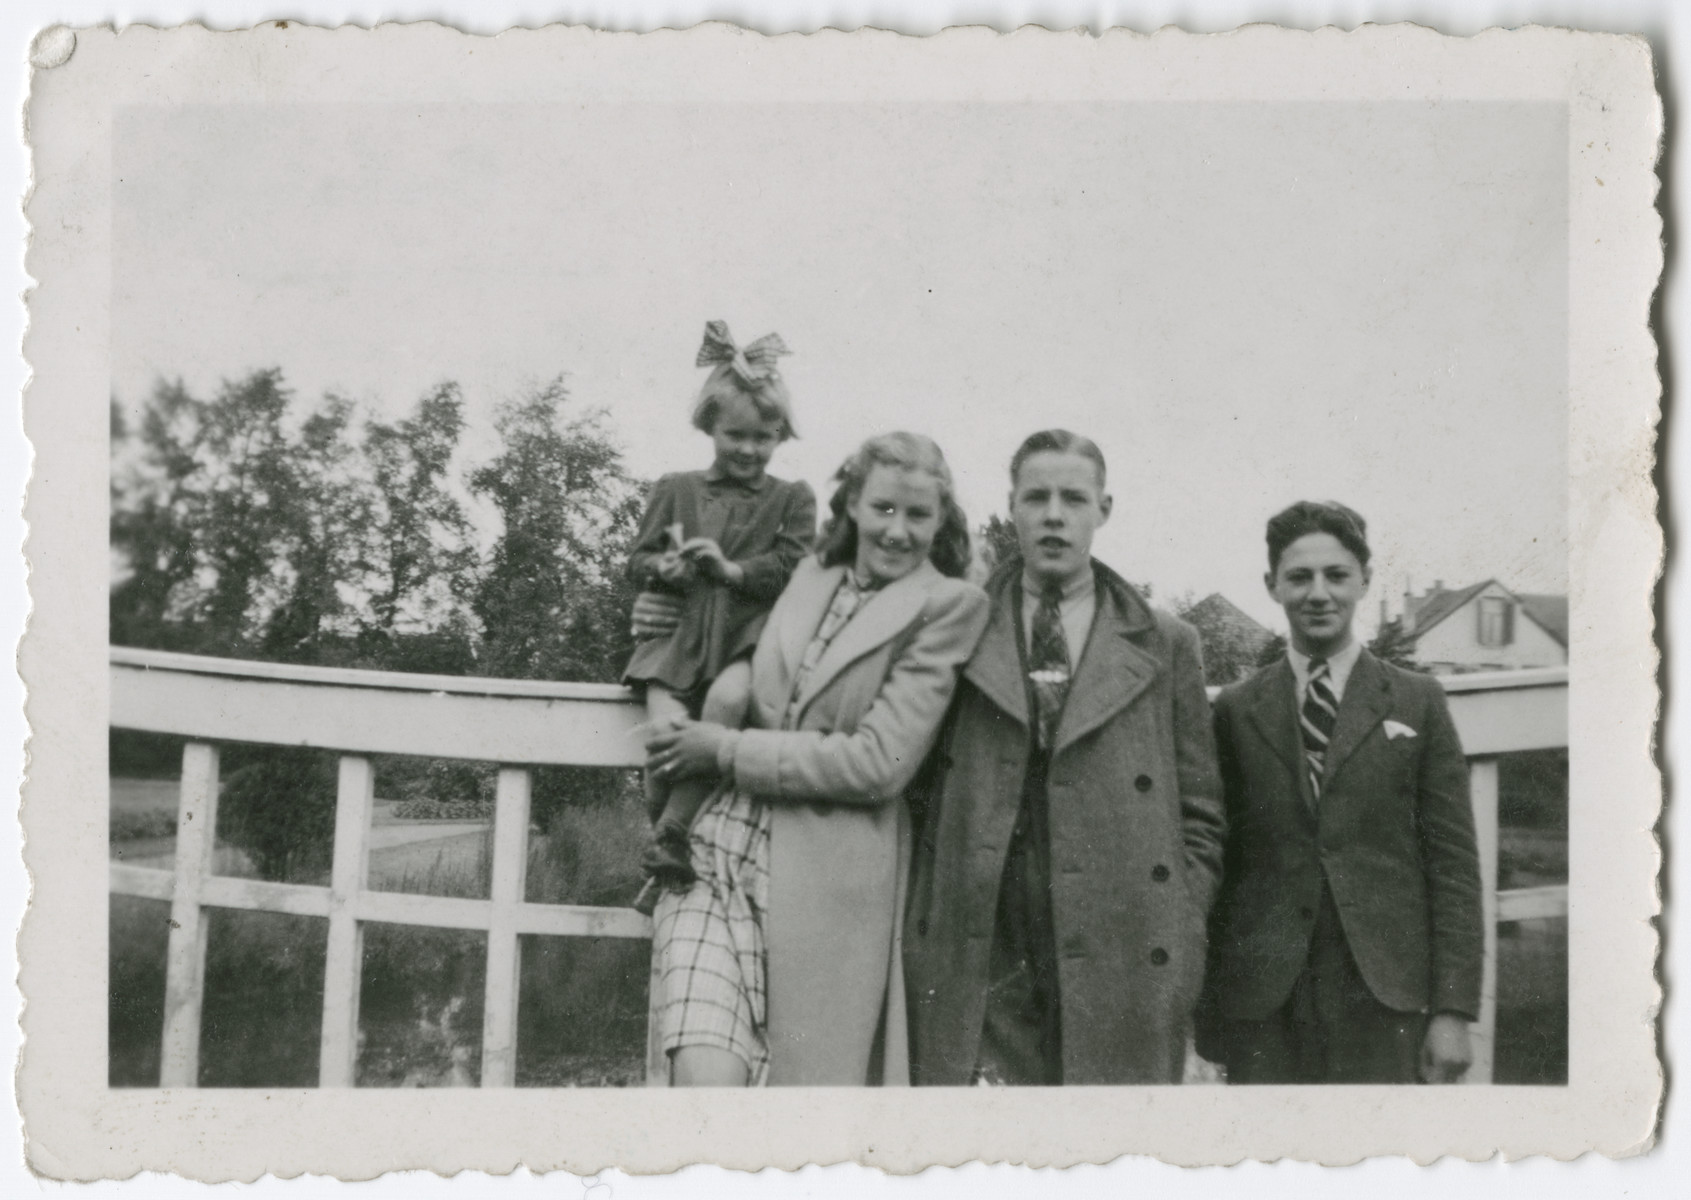 A rescued Jewish child poses with the children of rescuers.  Pictured are Feikje Bosman holding Bonnette Onderweegs, Feikje's boyfriend Roelof vander Veen, and Louis der Groot.  Bonnette is the daughter of resistance members Anne and Dick Onderweegs.  The Onderweegs had hidden Louis de Groot, and later went into hiding with the Bosman family after they were denounced for hiding Jews.